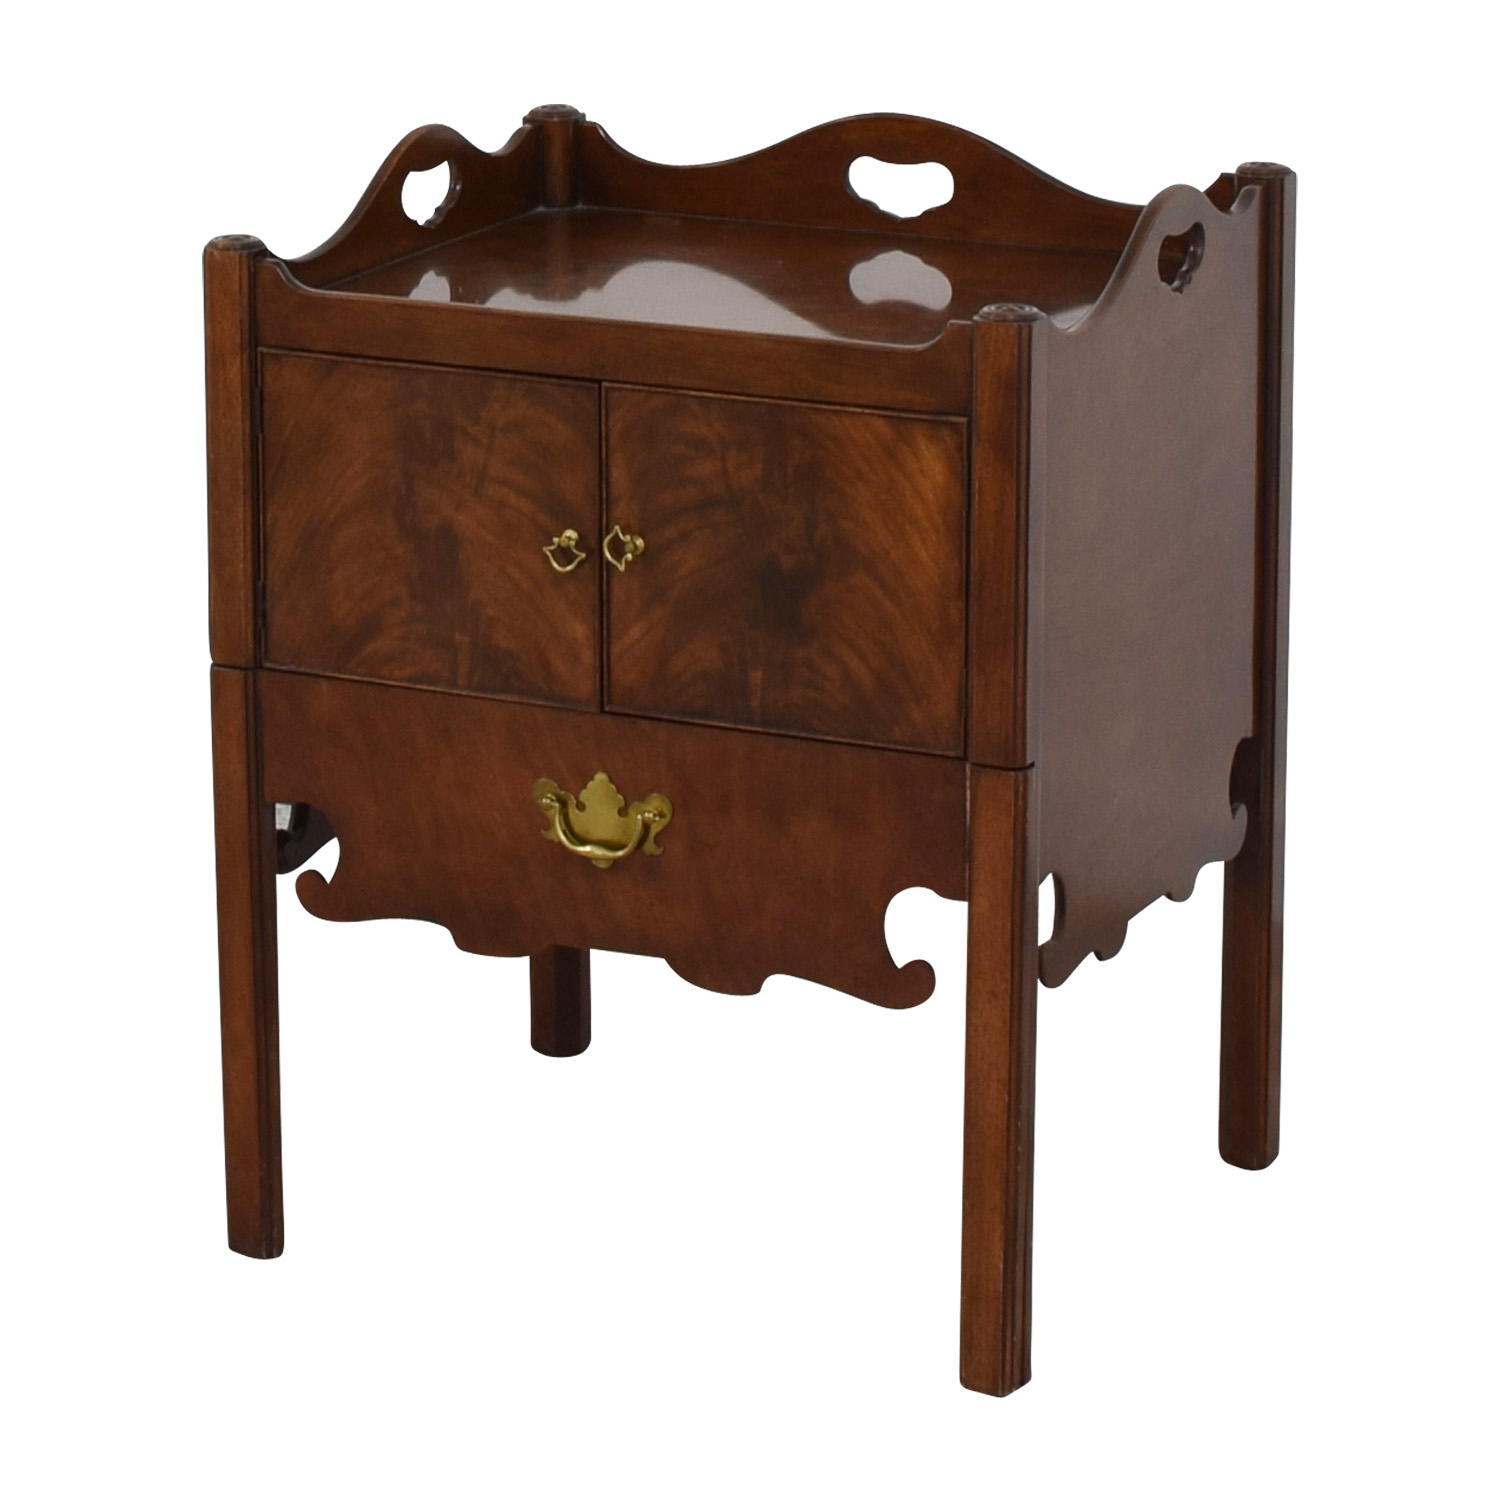 Furniture Masters Furniture Masters Antique Nesting Style End Table price